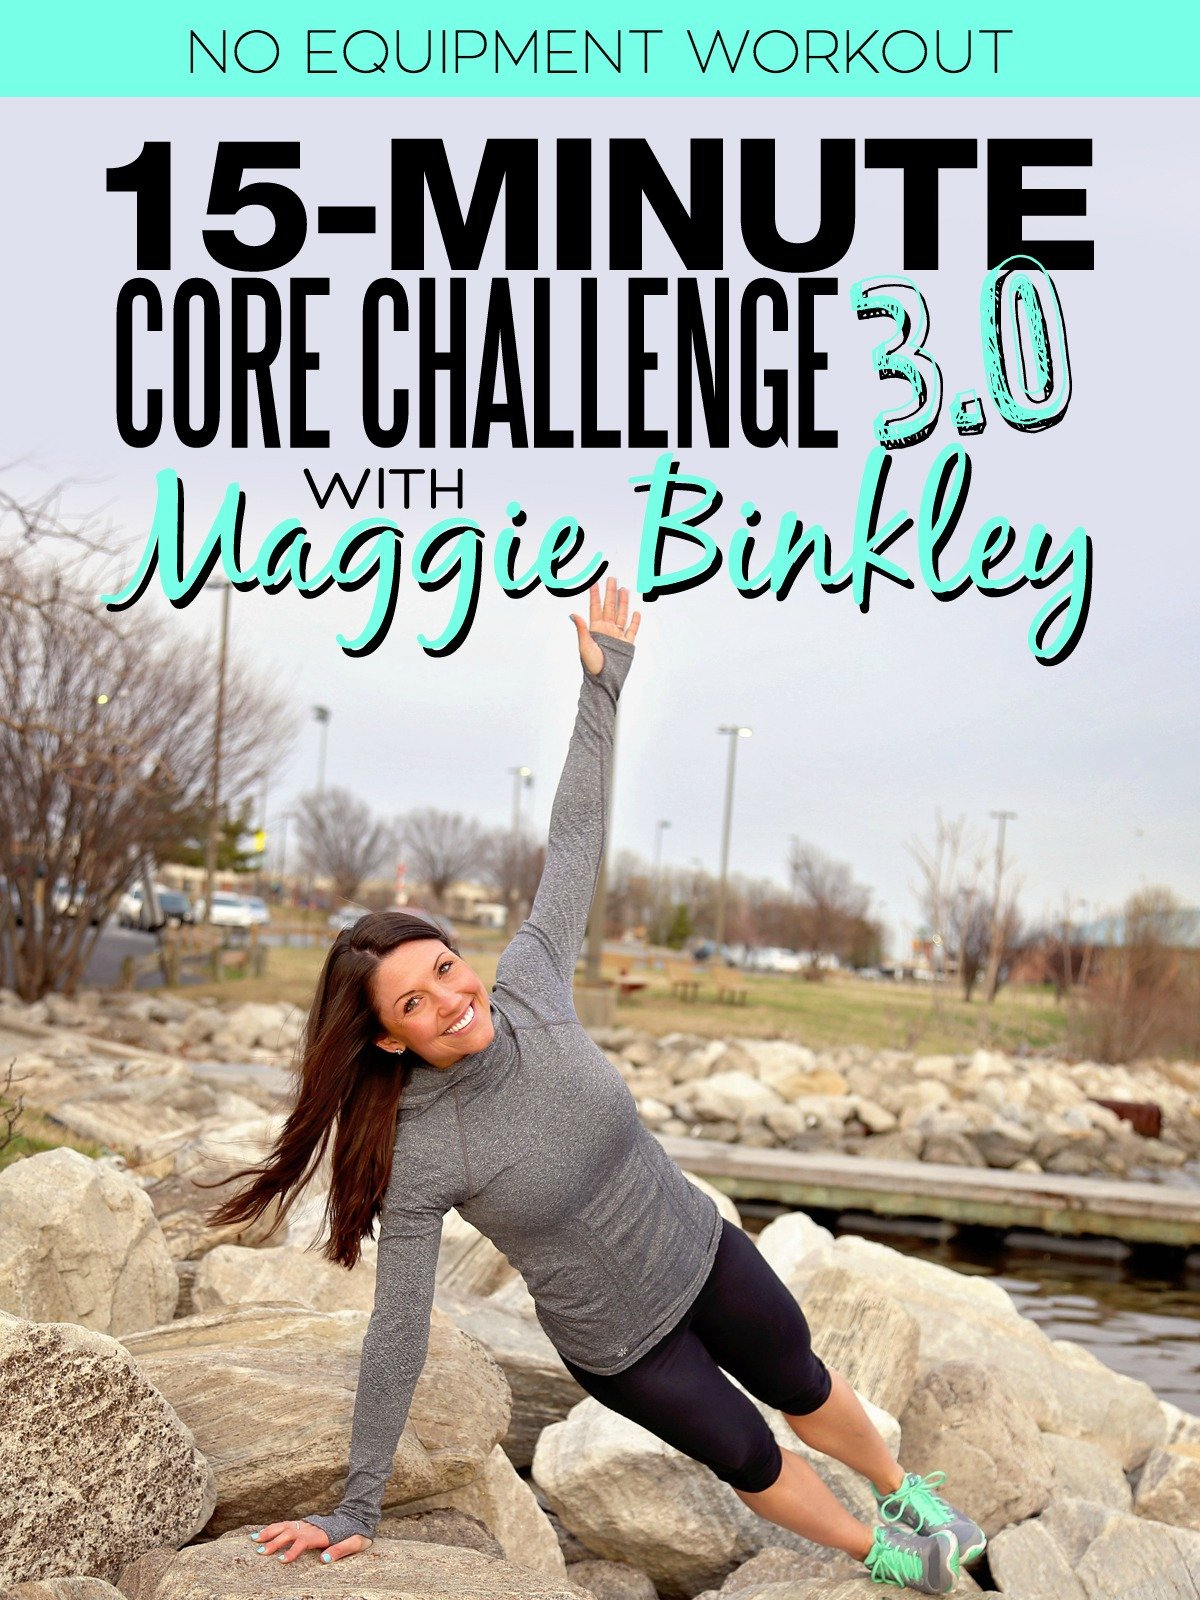 15-Minute Core Challenge 3.0 Workout